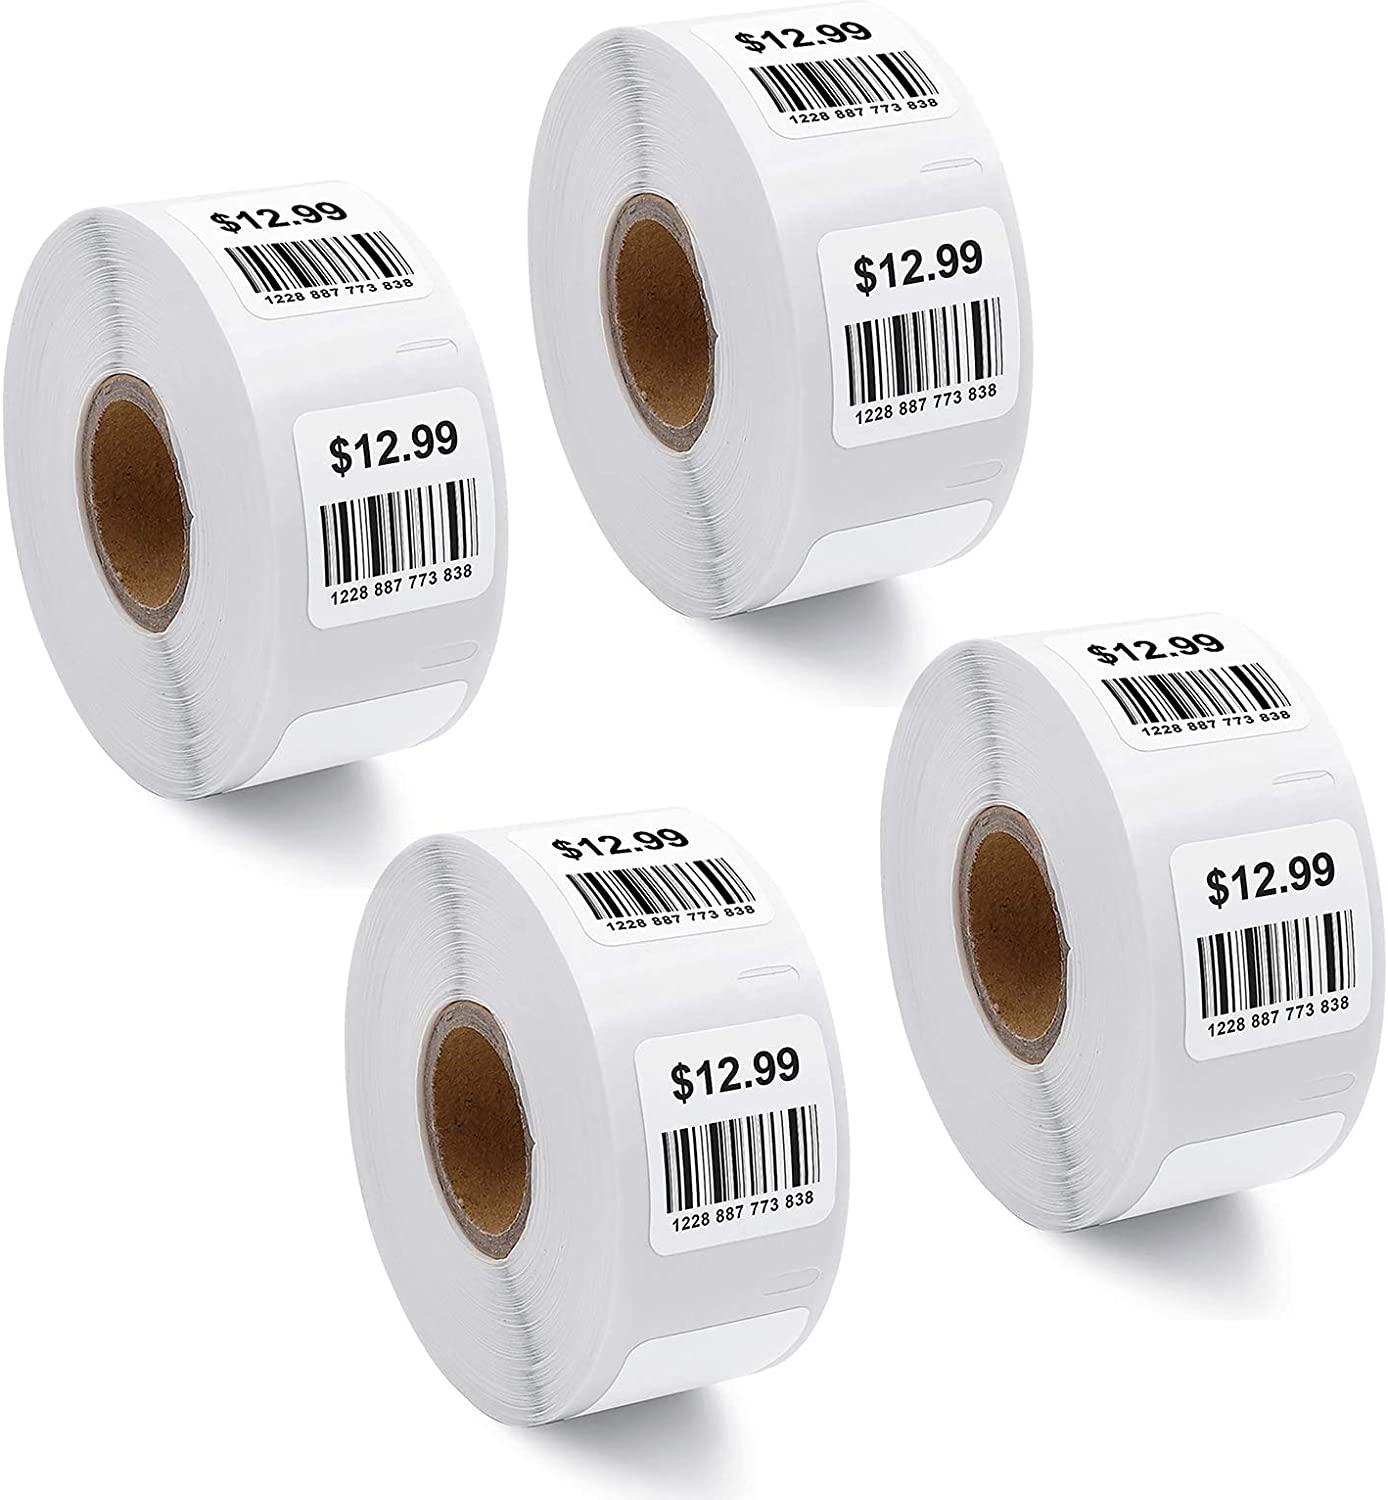 5 Rouleaux RINKLEE 11352 S0722520 /Étiquettes Compatible pour DYMO LabelWriter 4XL 450 400 330 320 310 Duo//Turbo//Twin Turbo SEIKO SLP 450 430 420 410 400 200 100 25 x 54 mm